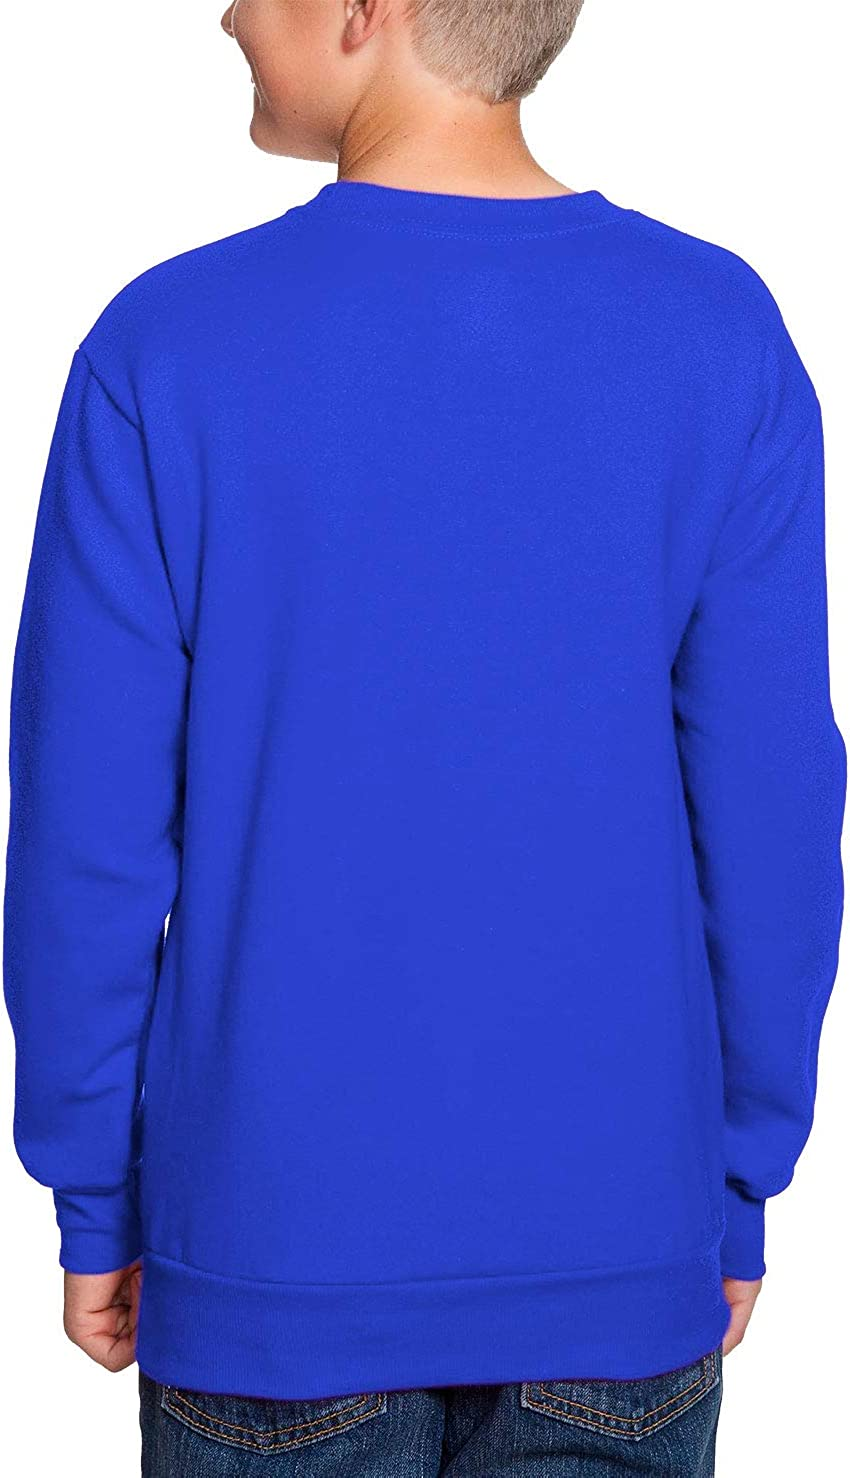 Back to School Youth Fleece Crewneck Sweater HAASE UNLIMITED Hello 5th Grade Royal Blue, X-Large